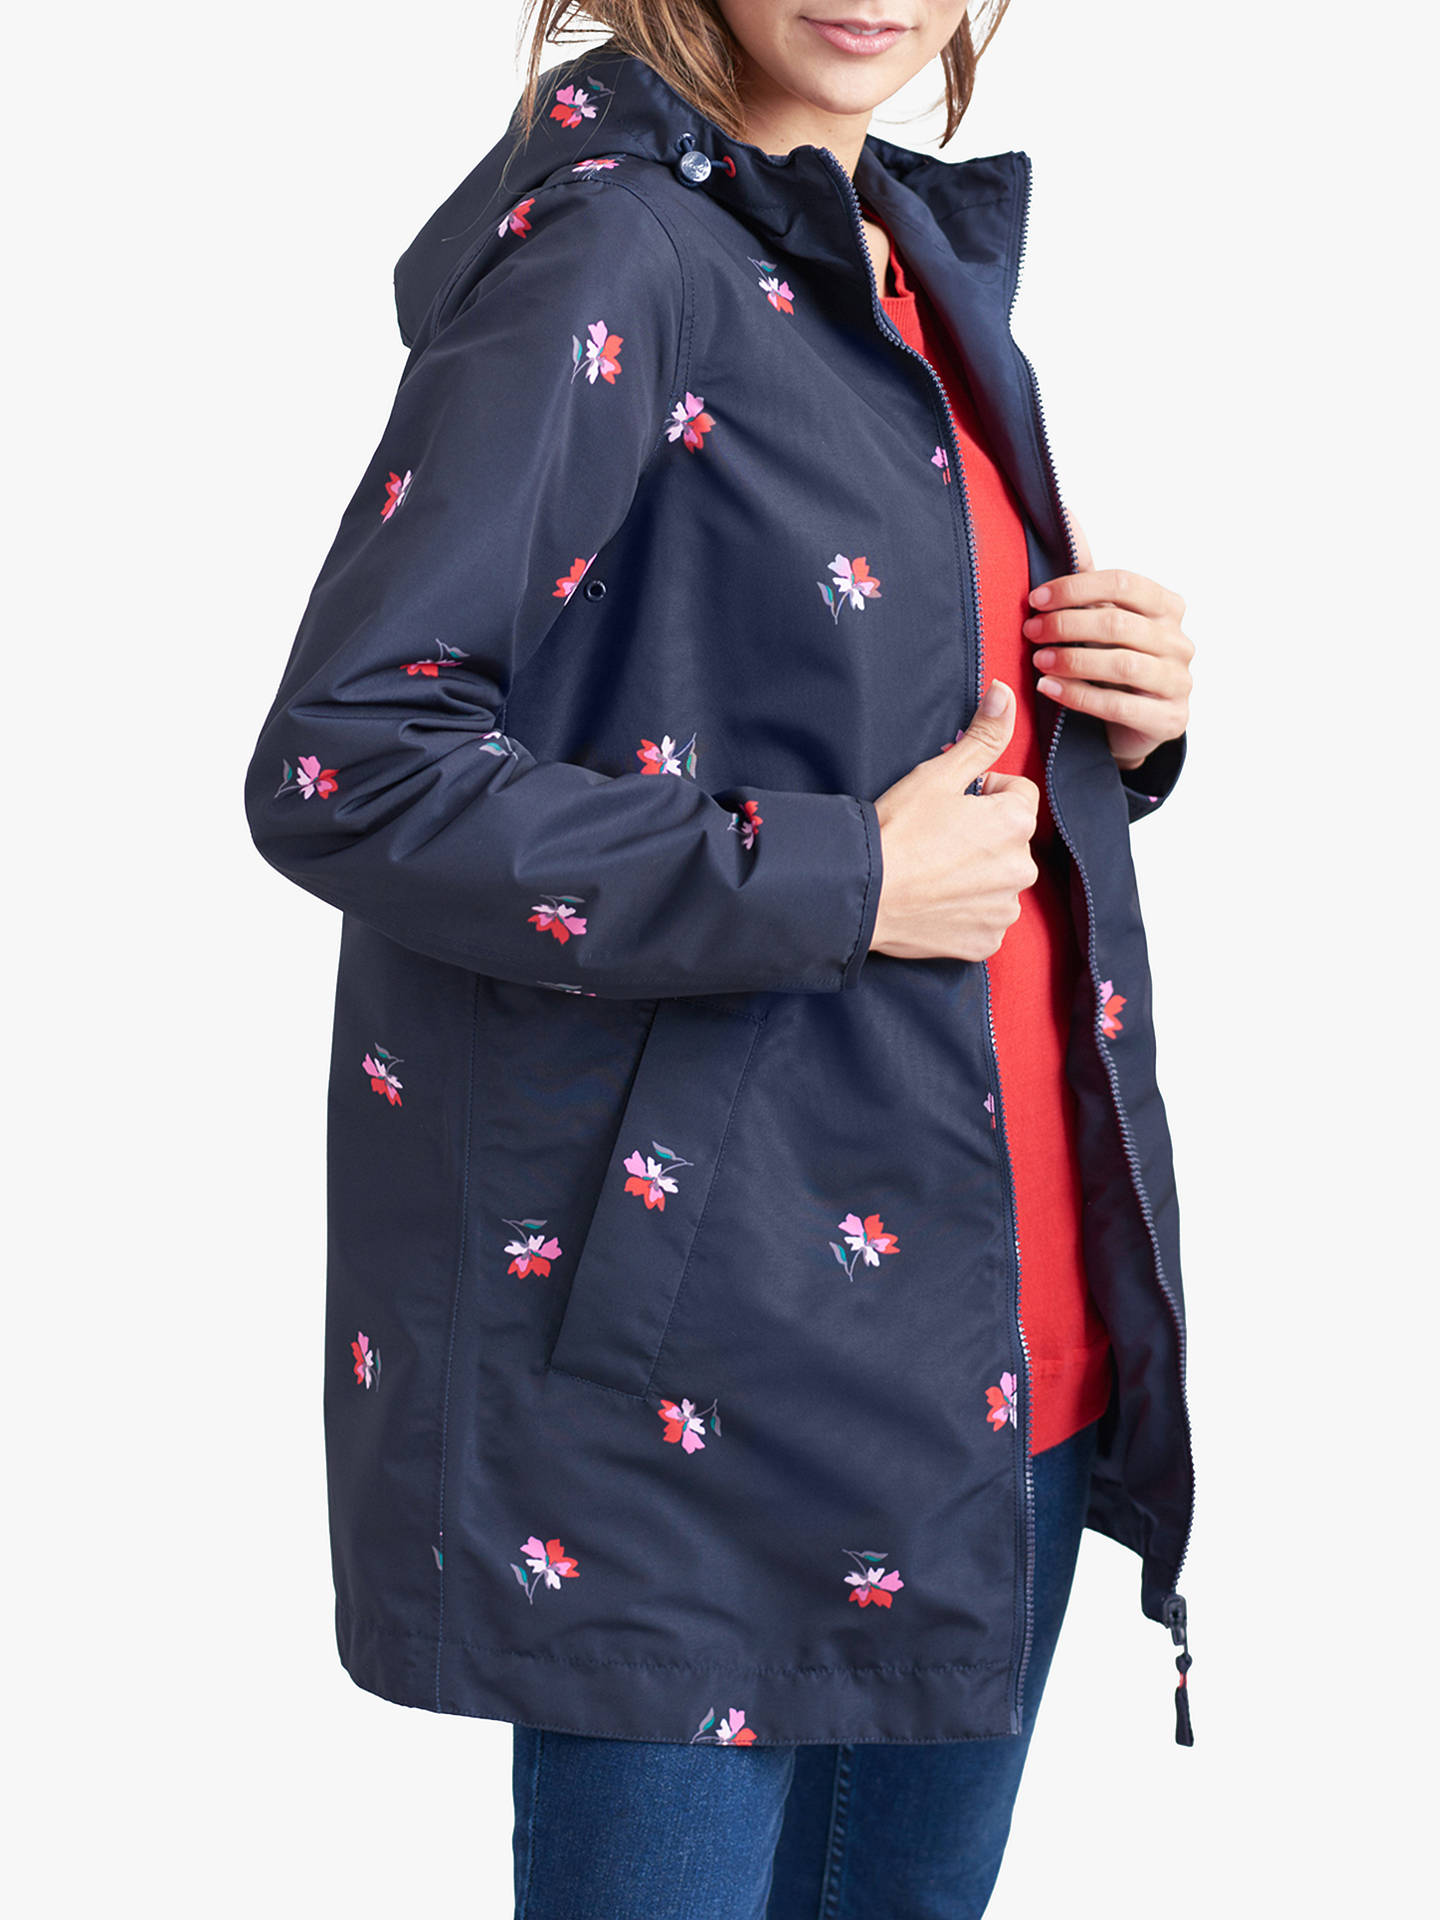 0b70d72101 Joules Dockland Reversible Posy Print Raincoat, Navy at John Lewis ...